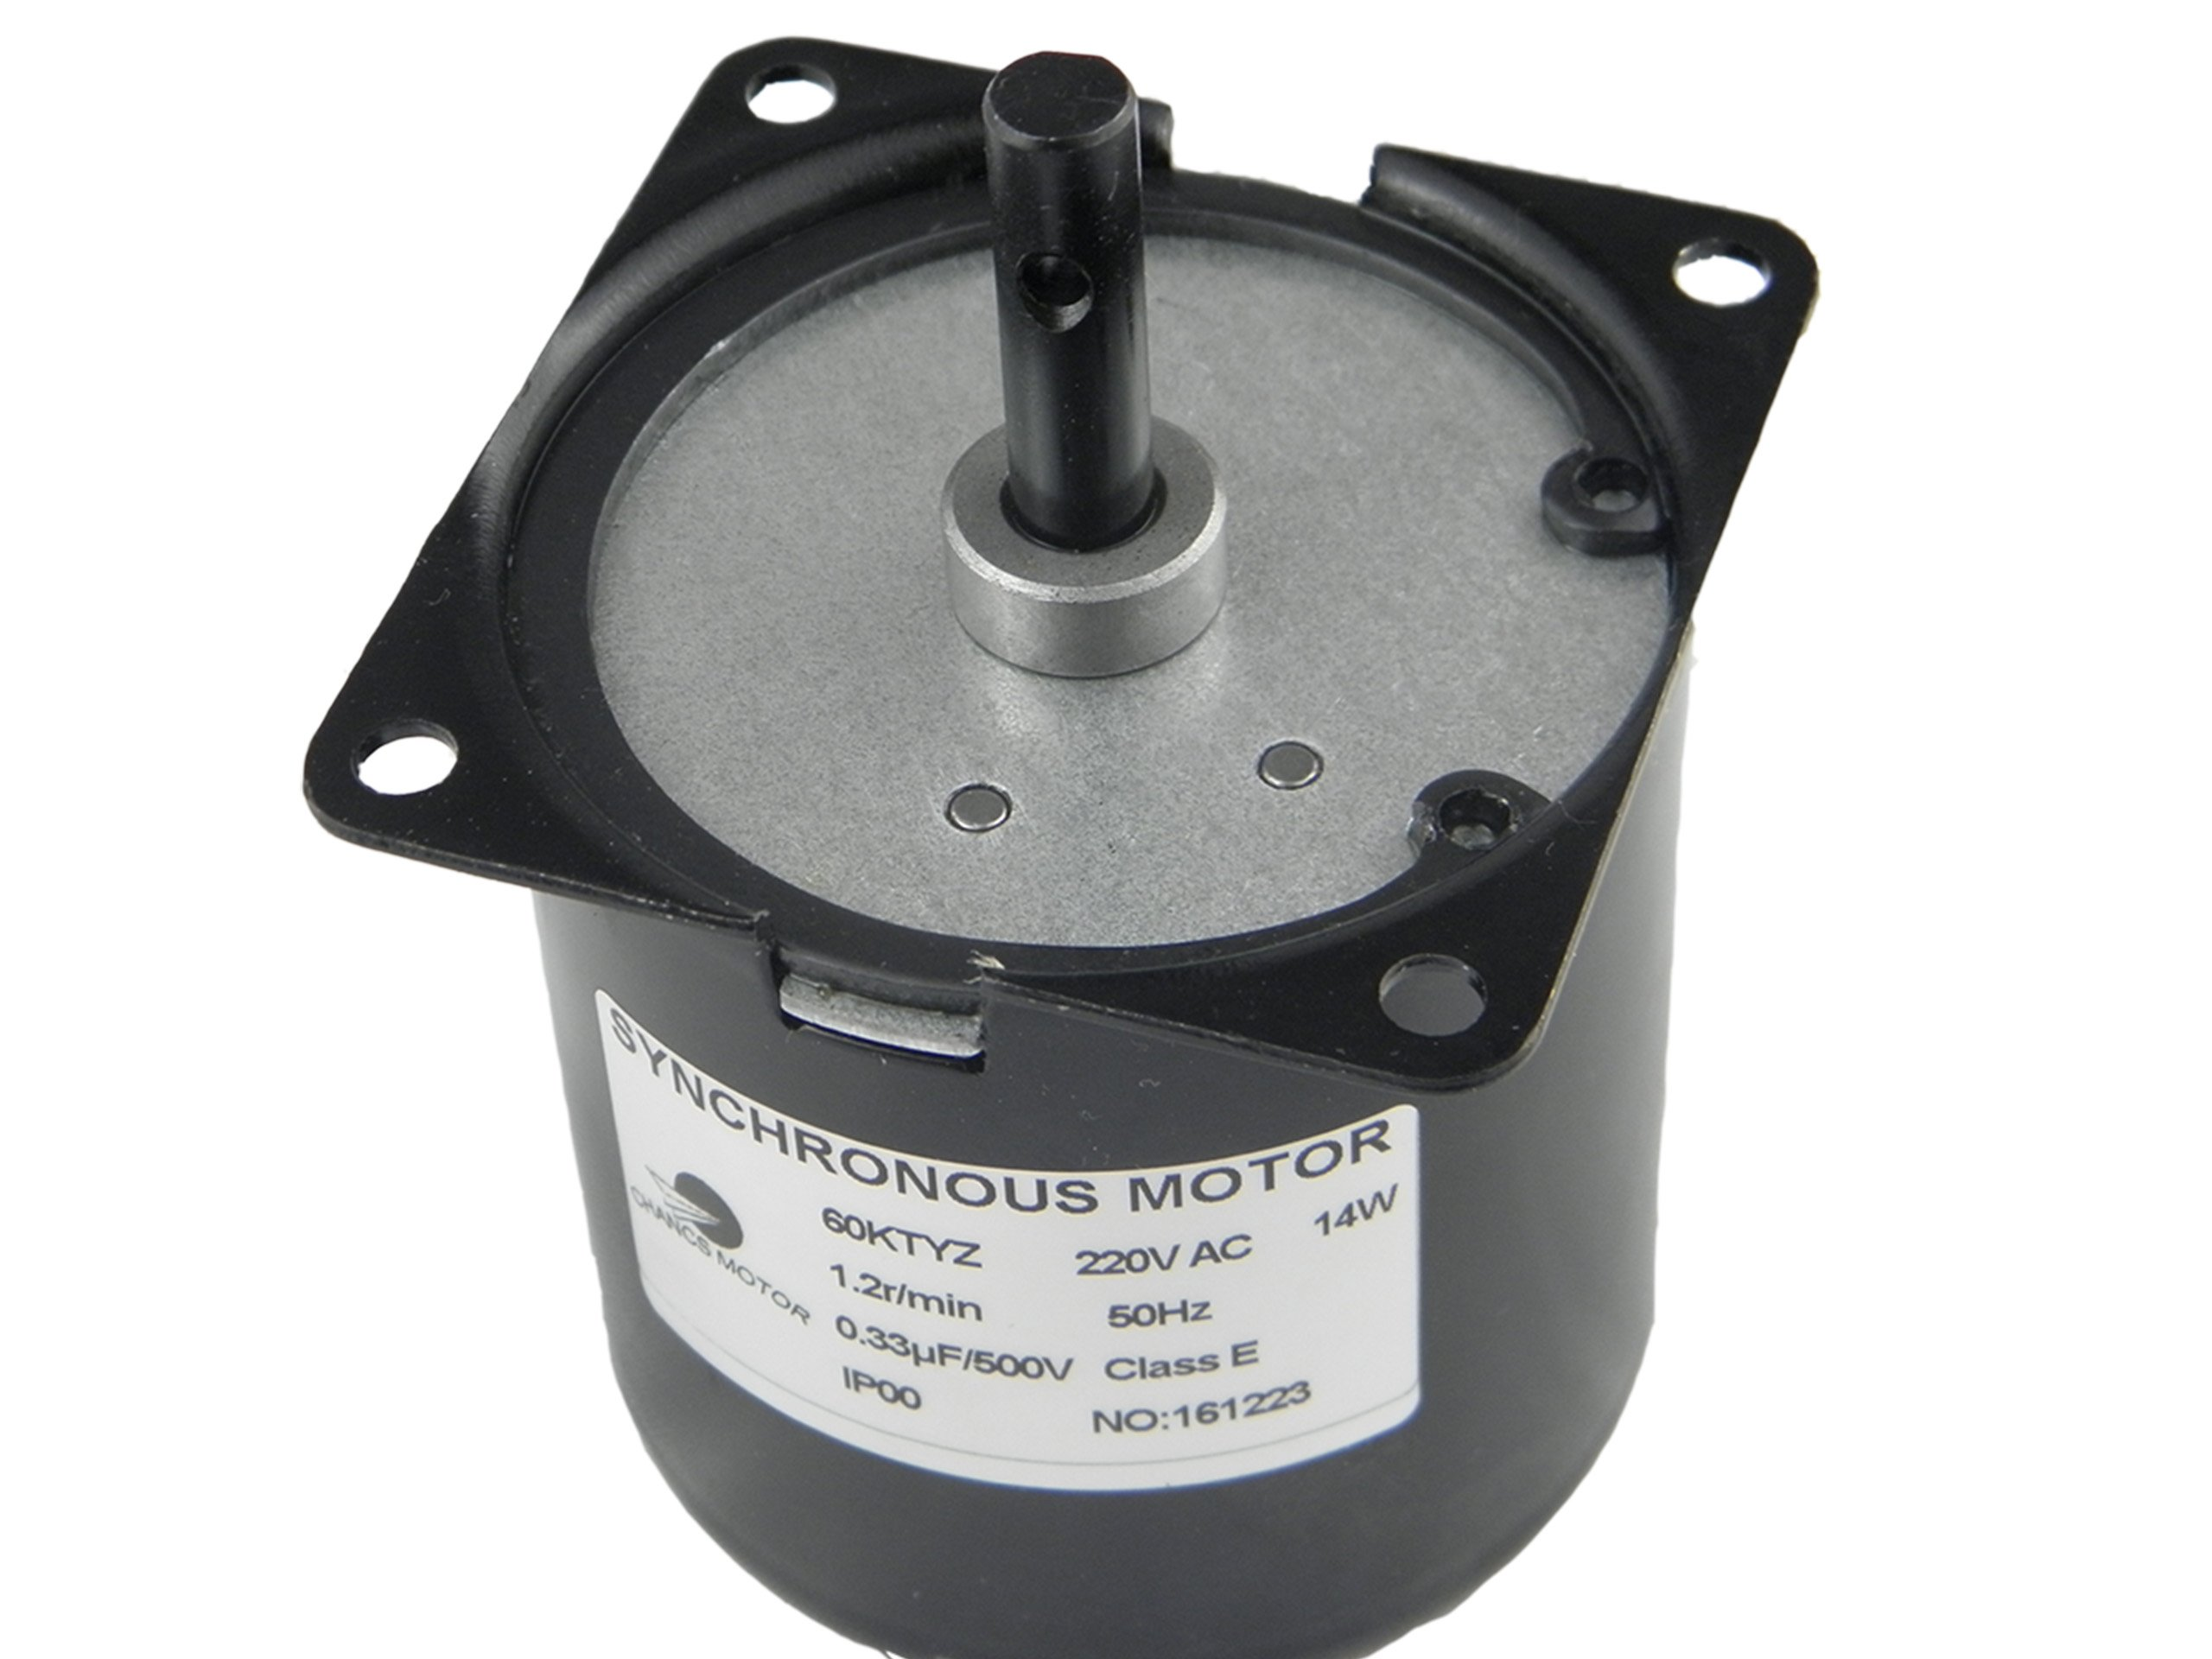 Permanent Magnet Motors - 268 - Super Savings! Save up to 37